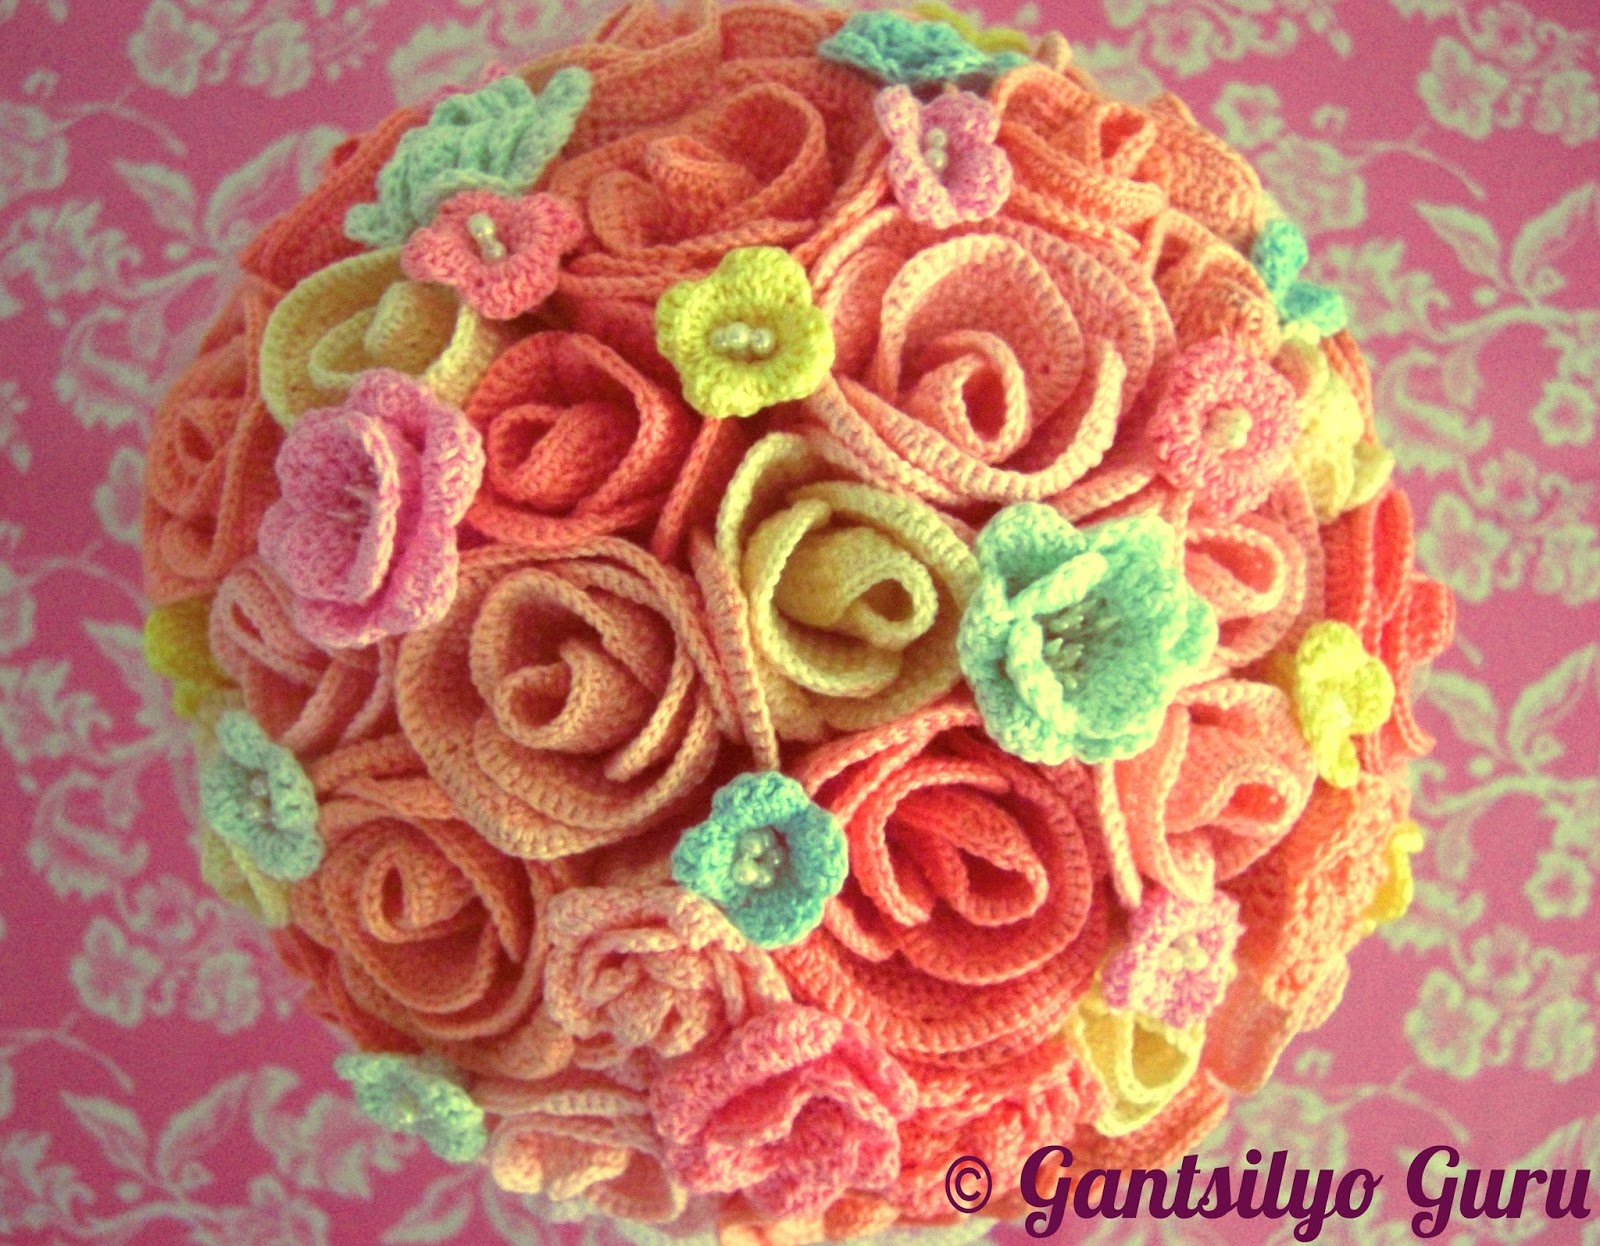 Gantsilyo guru crocheted bouquet is here crocheted bouquet is here izmirmasajfo